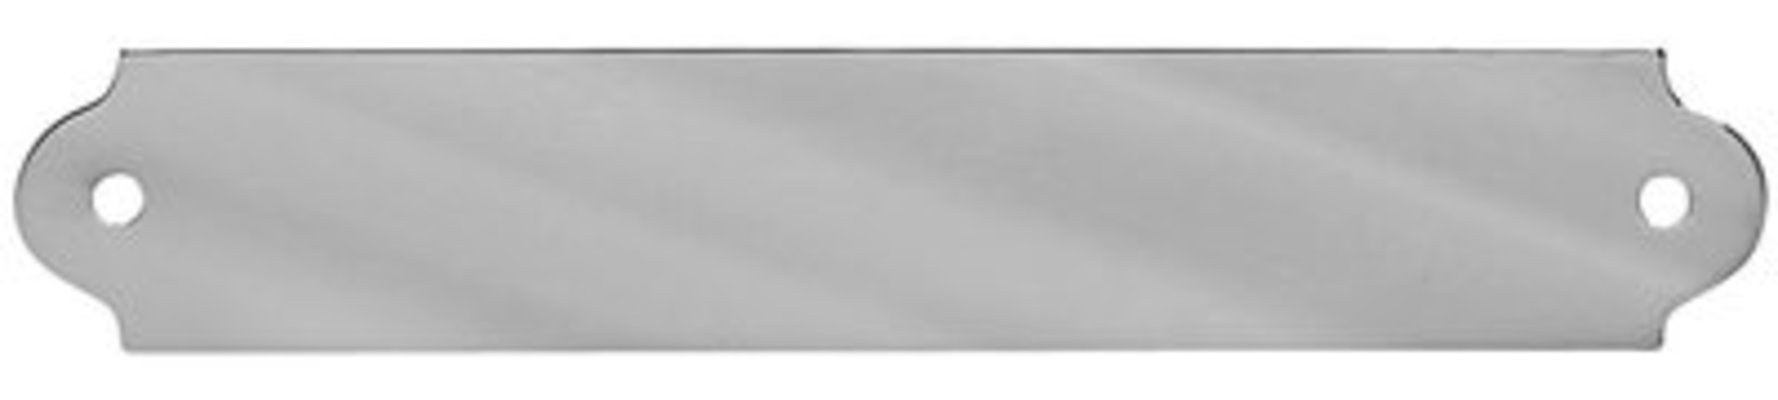 Bridle / Saddle Name Plate, Chrome